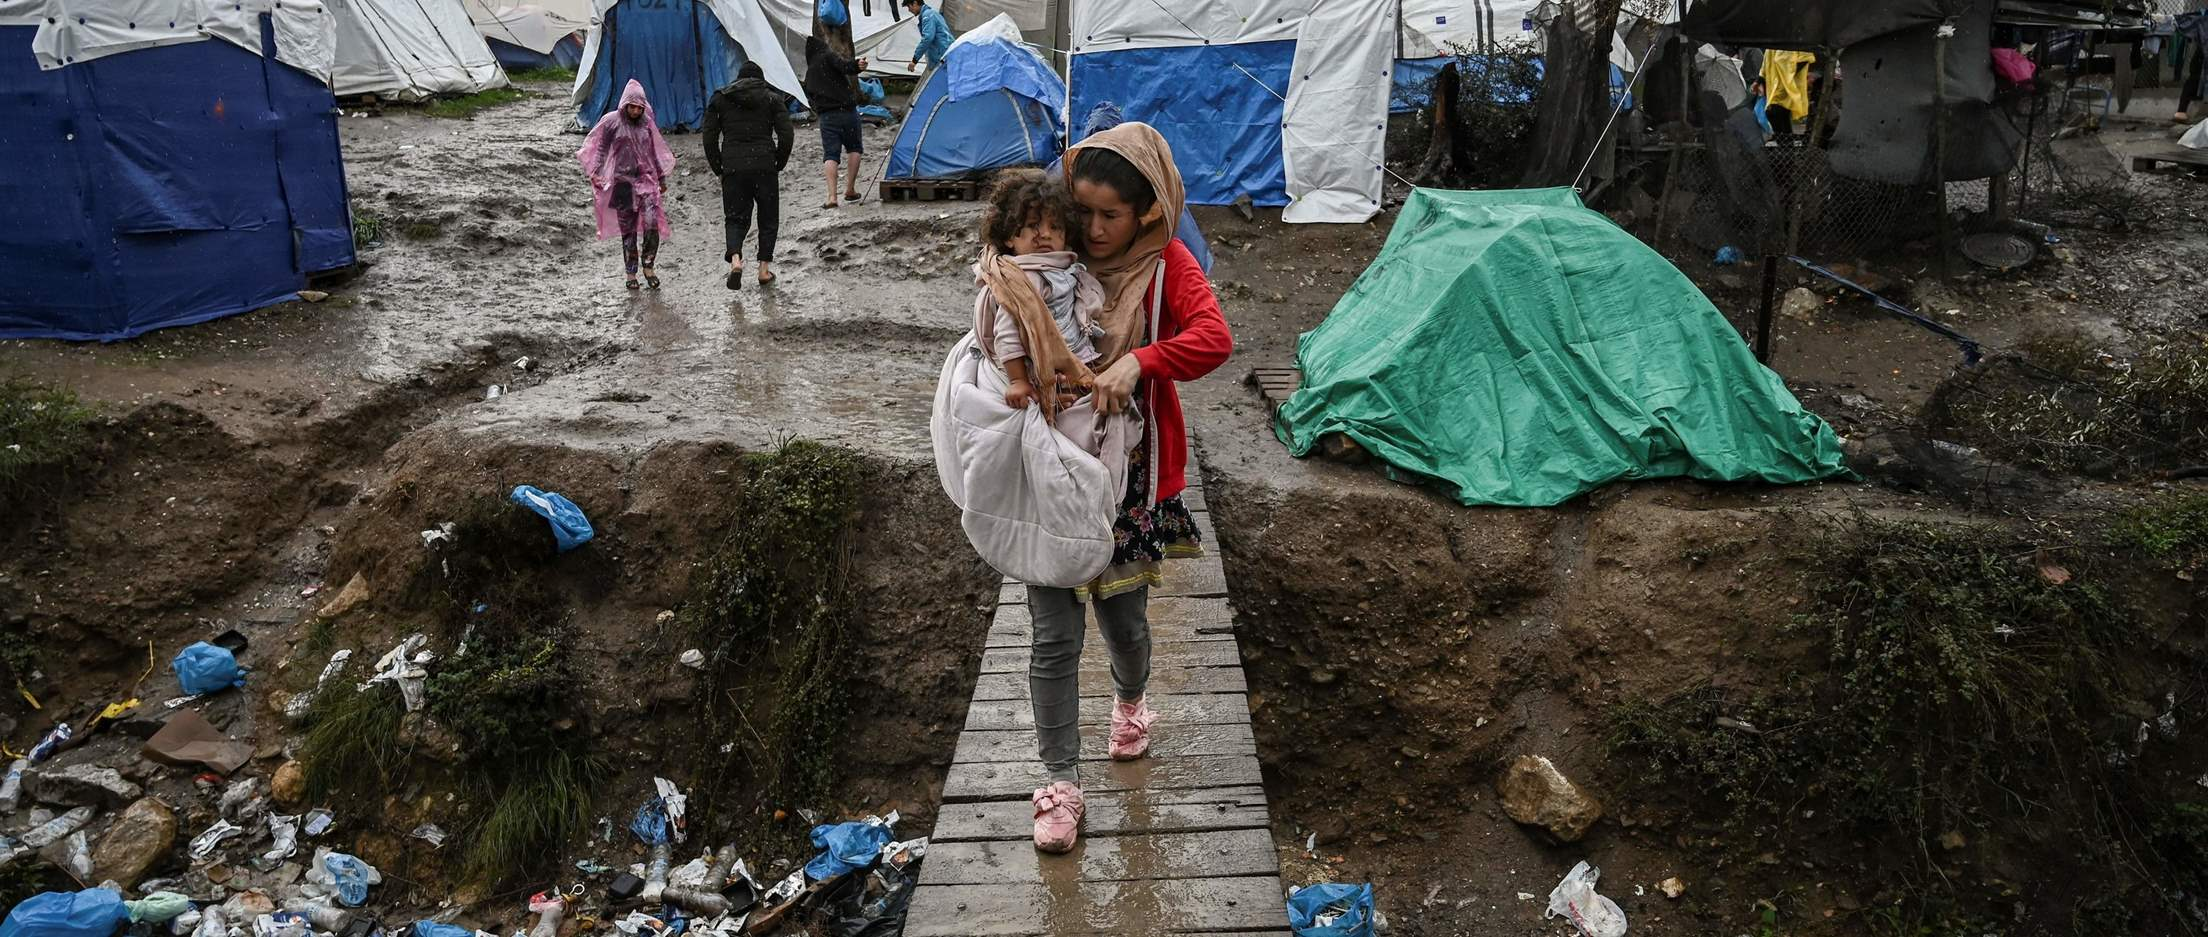 Global: Ignored by COVID-19 responses, refugees face starvation